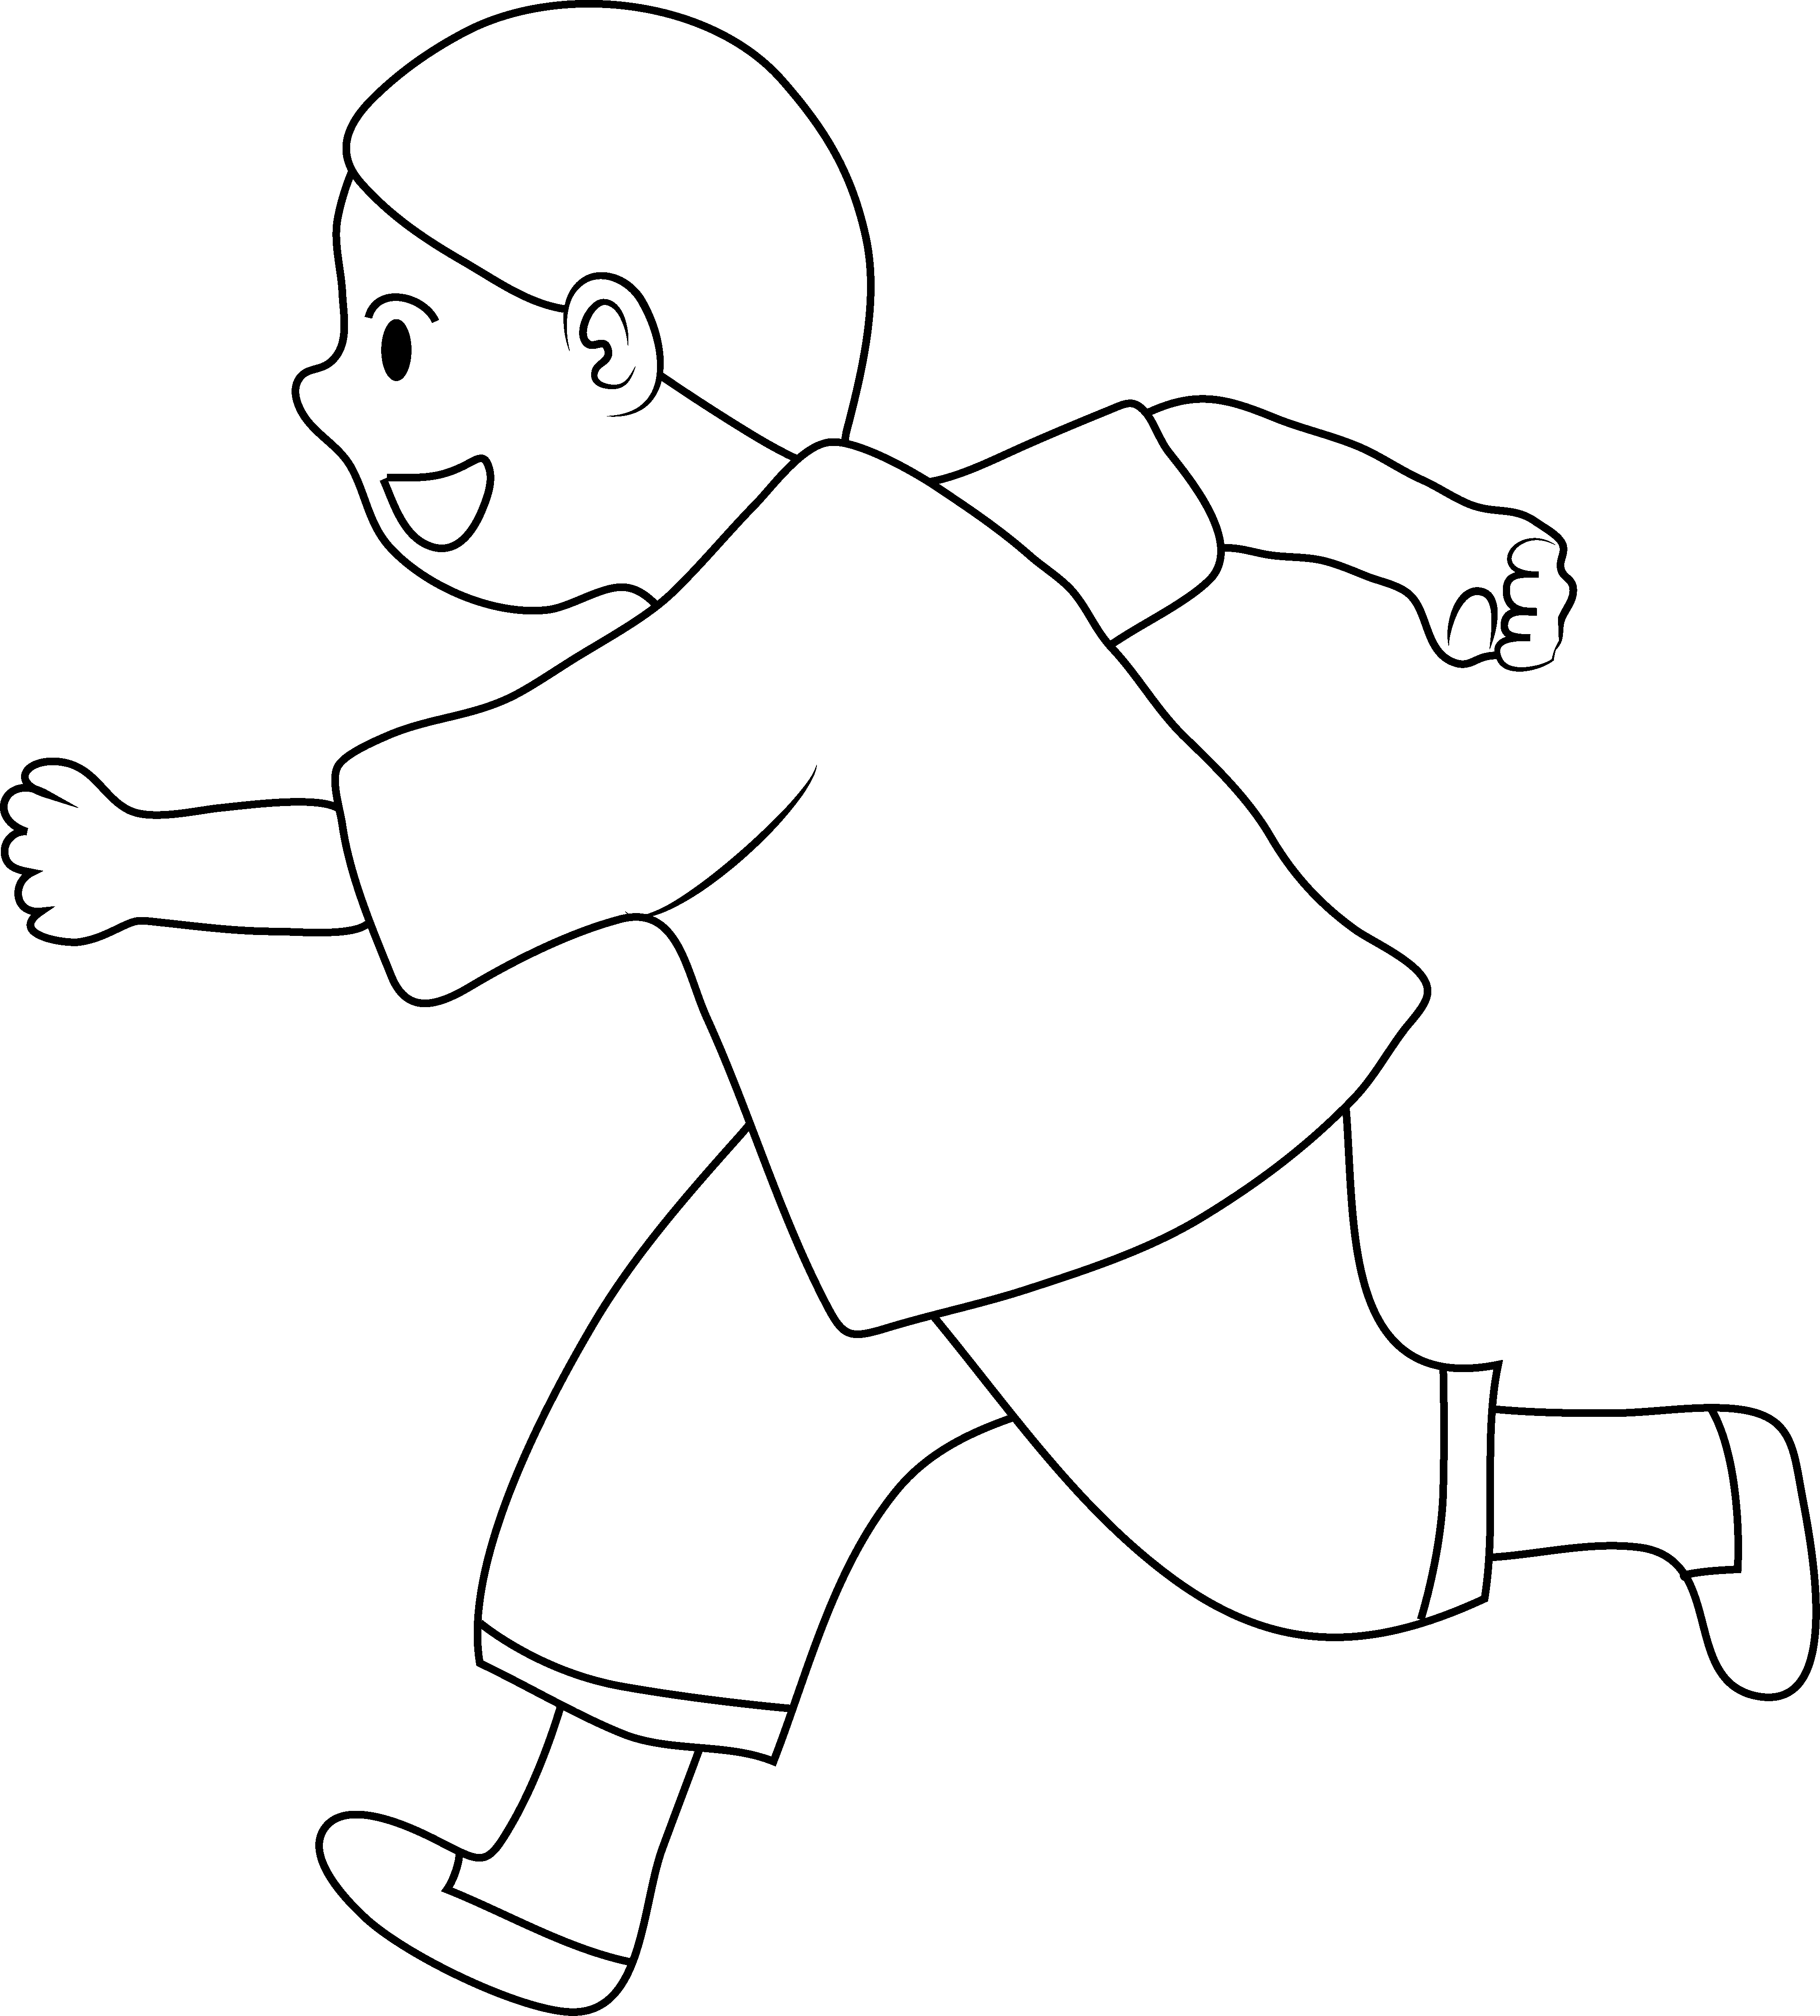 Black and white clipart child running outside clipart free download Free Children Running Clipart, Download Free Clip Art, Free Clip Art ... clipart free download